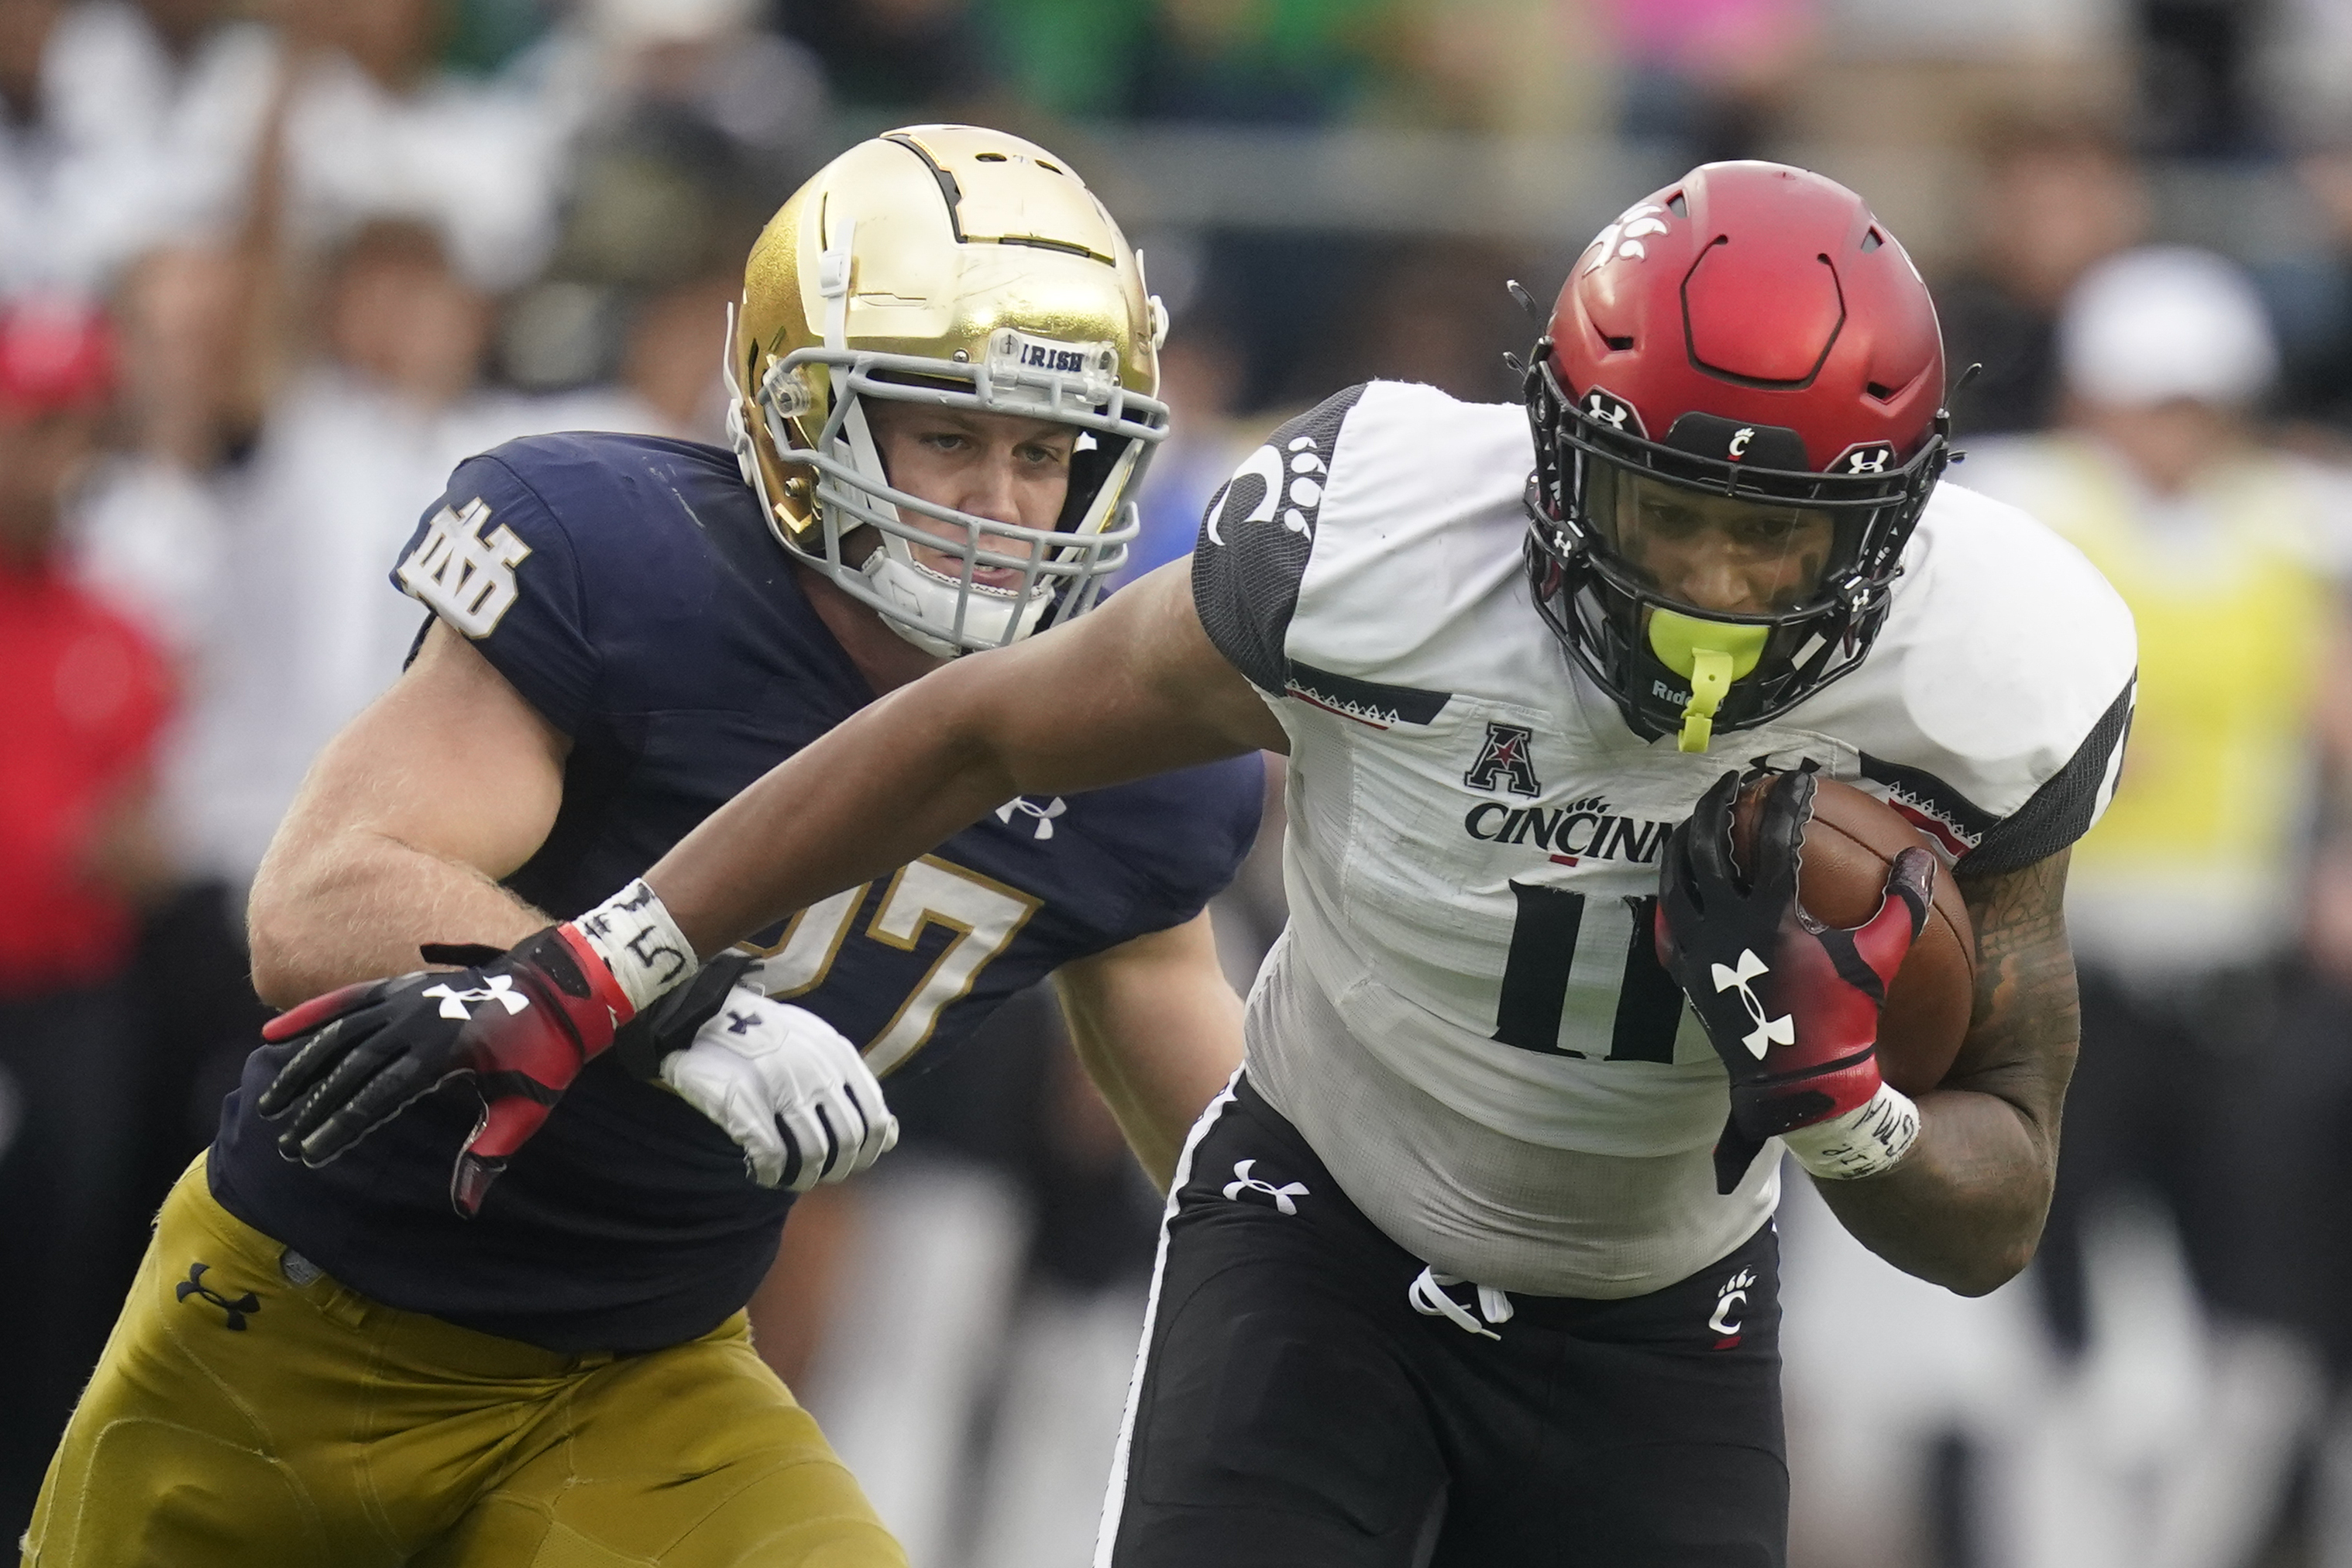 Cincinnati's Leonard Taylor (11) is chased by Notre Dame's JD Bertrand (27) during the second half of the Bearcats' win over the Fighting Irish.